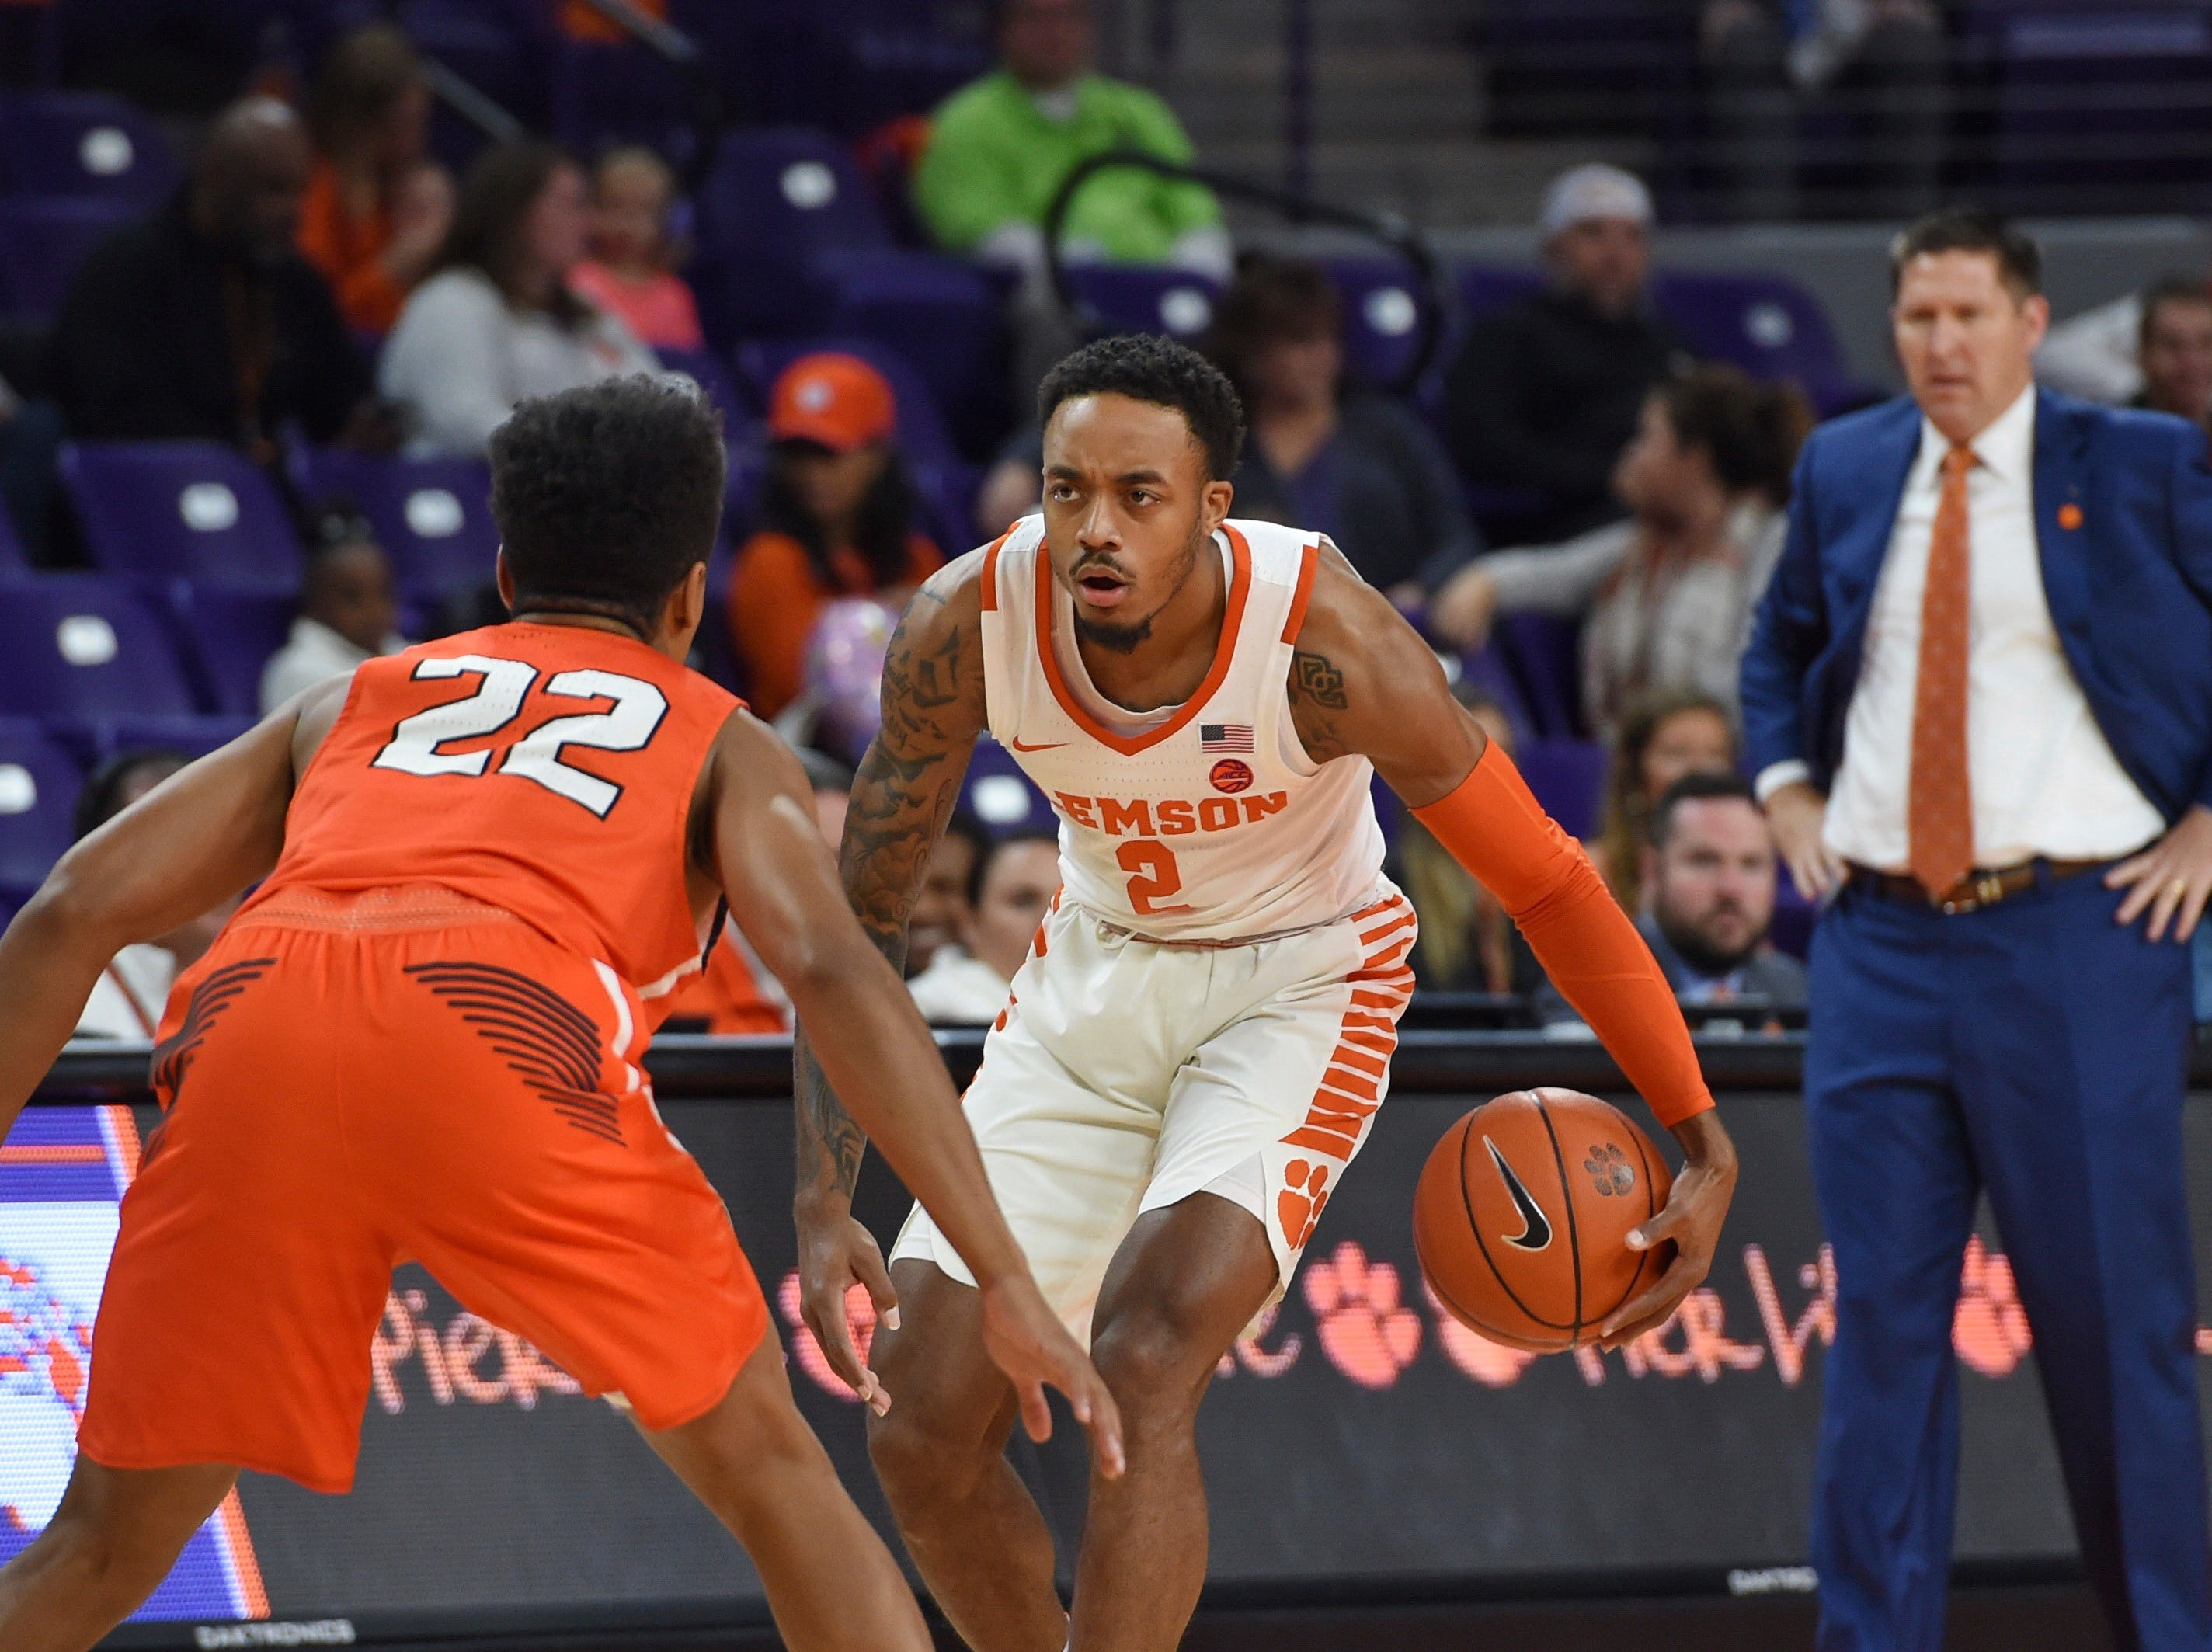 Clemson's Marcquise Reed (2) works against Sam Houston State's Marcus Harris Wednesday night in Clemson.